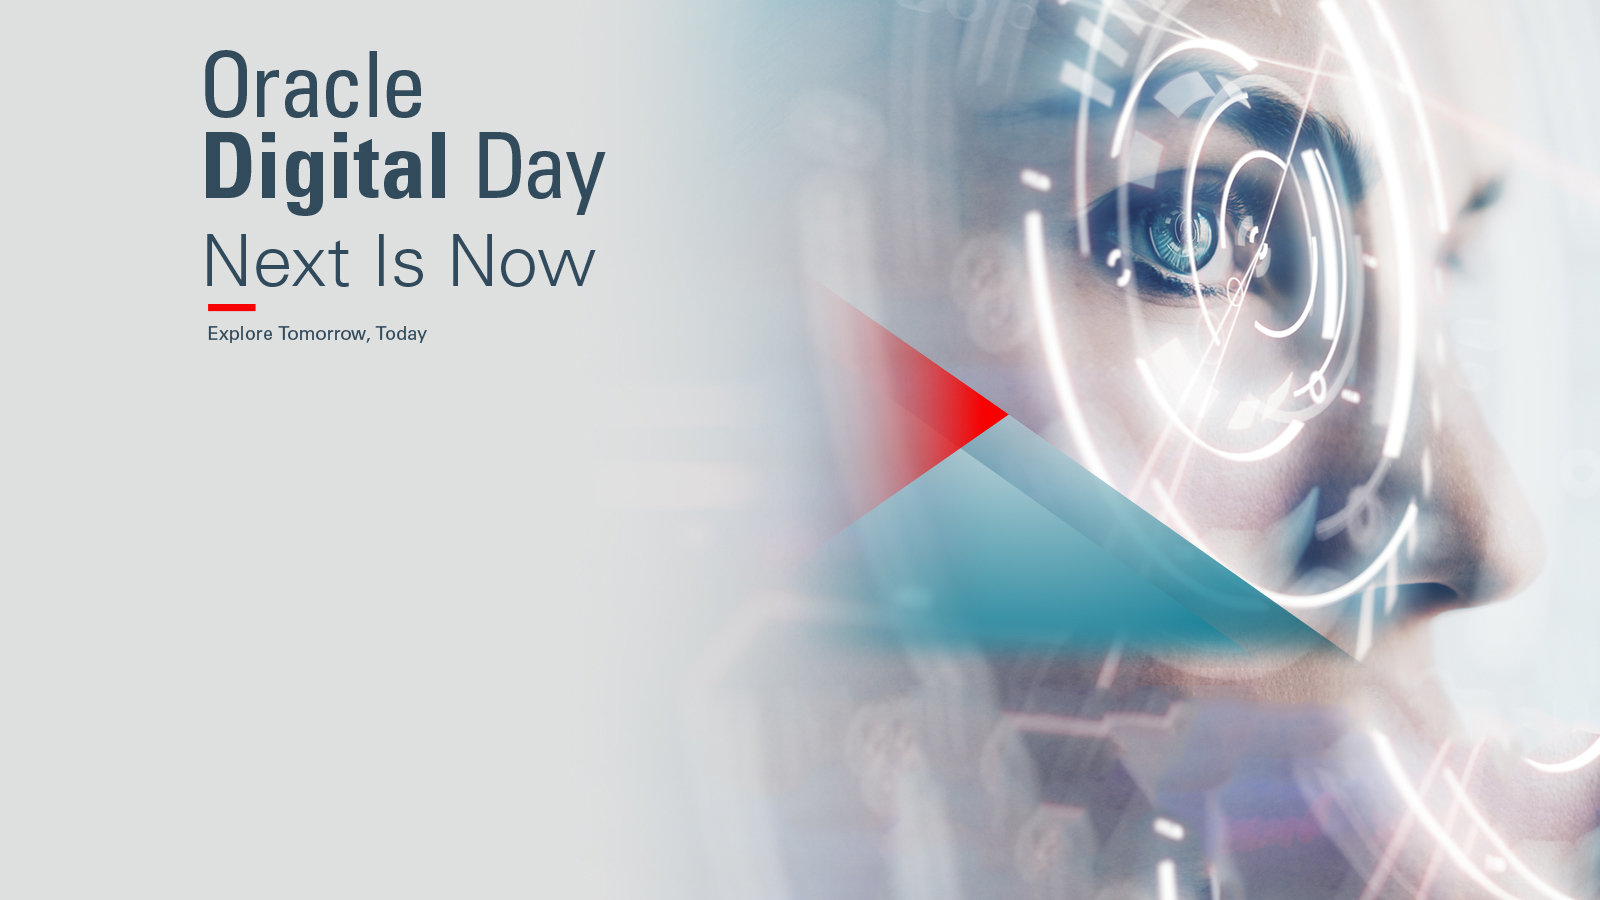 Oracle Digital Day